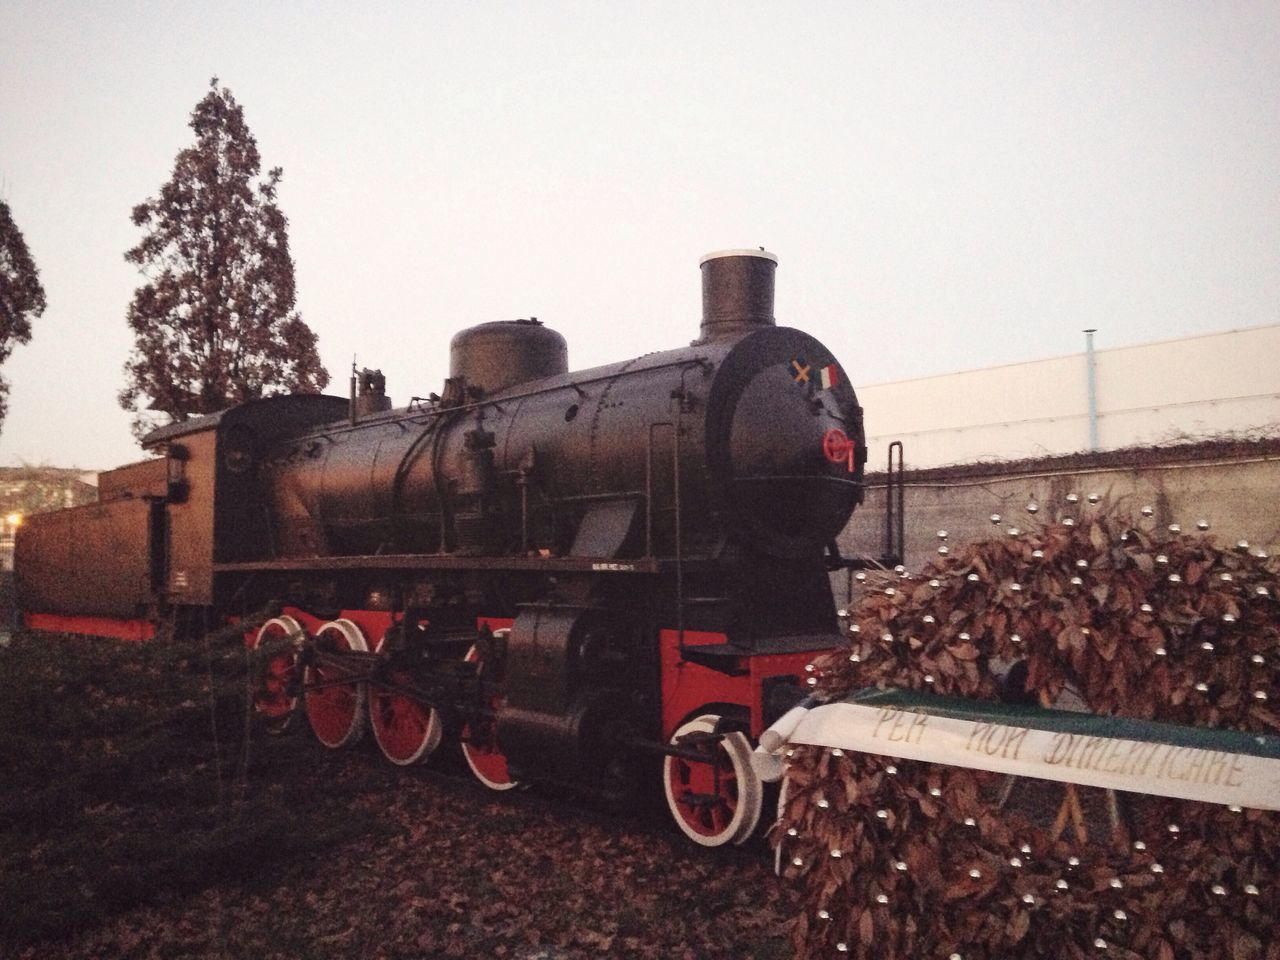 8/365 Verona Italy Italian One Year Project Transportation Rail Transportation Mode Of Transport Railroad Track Sky Steam Train Train - Vehicle Locomotive Outdoors Old-fashioned Metal No People Clear Sky Day Nature Tractor January 8 2017